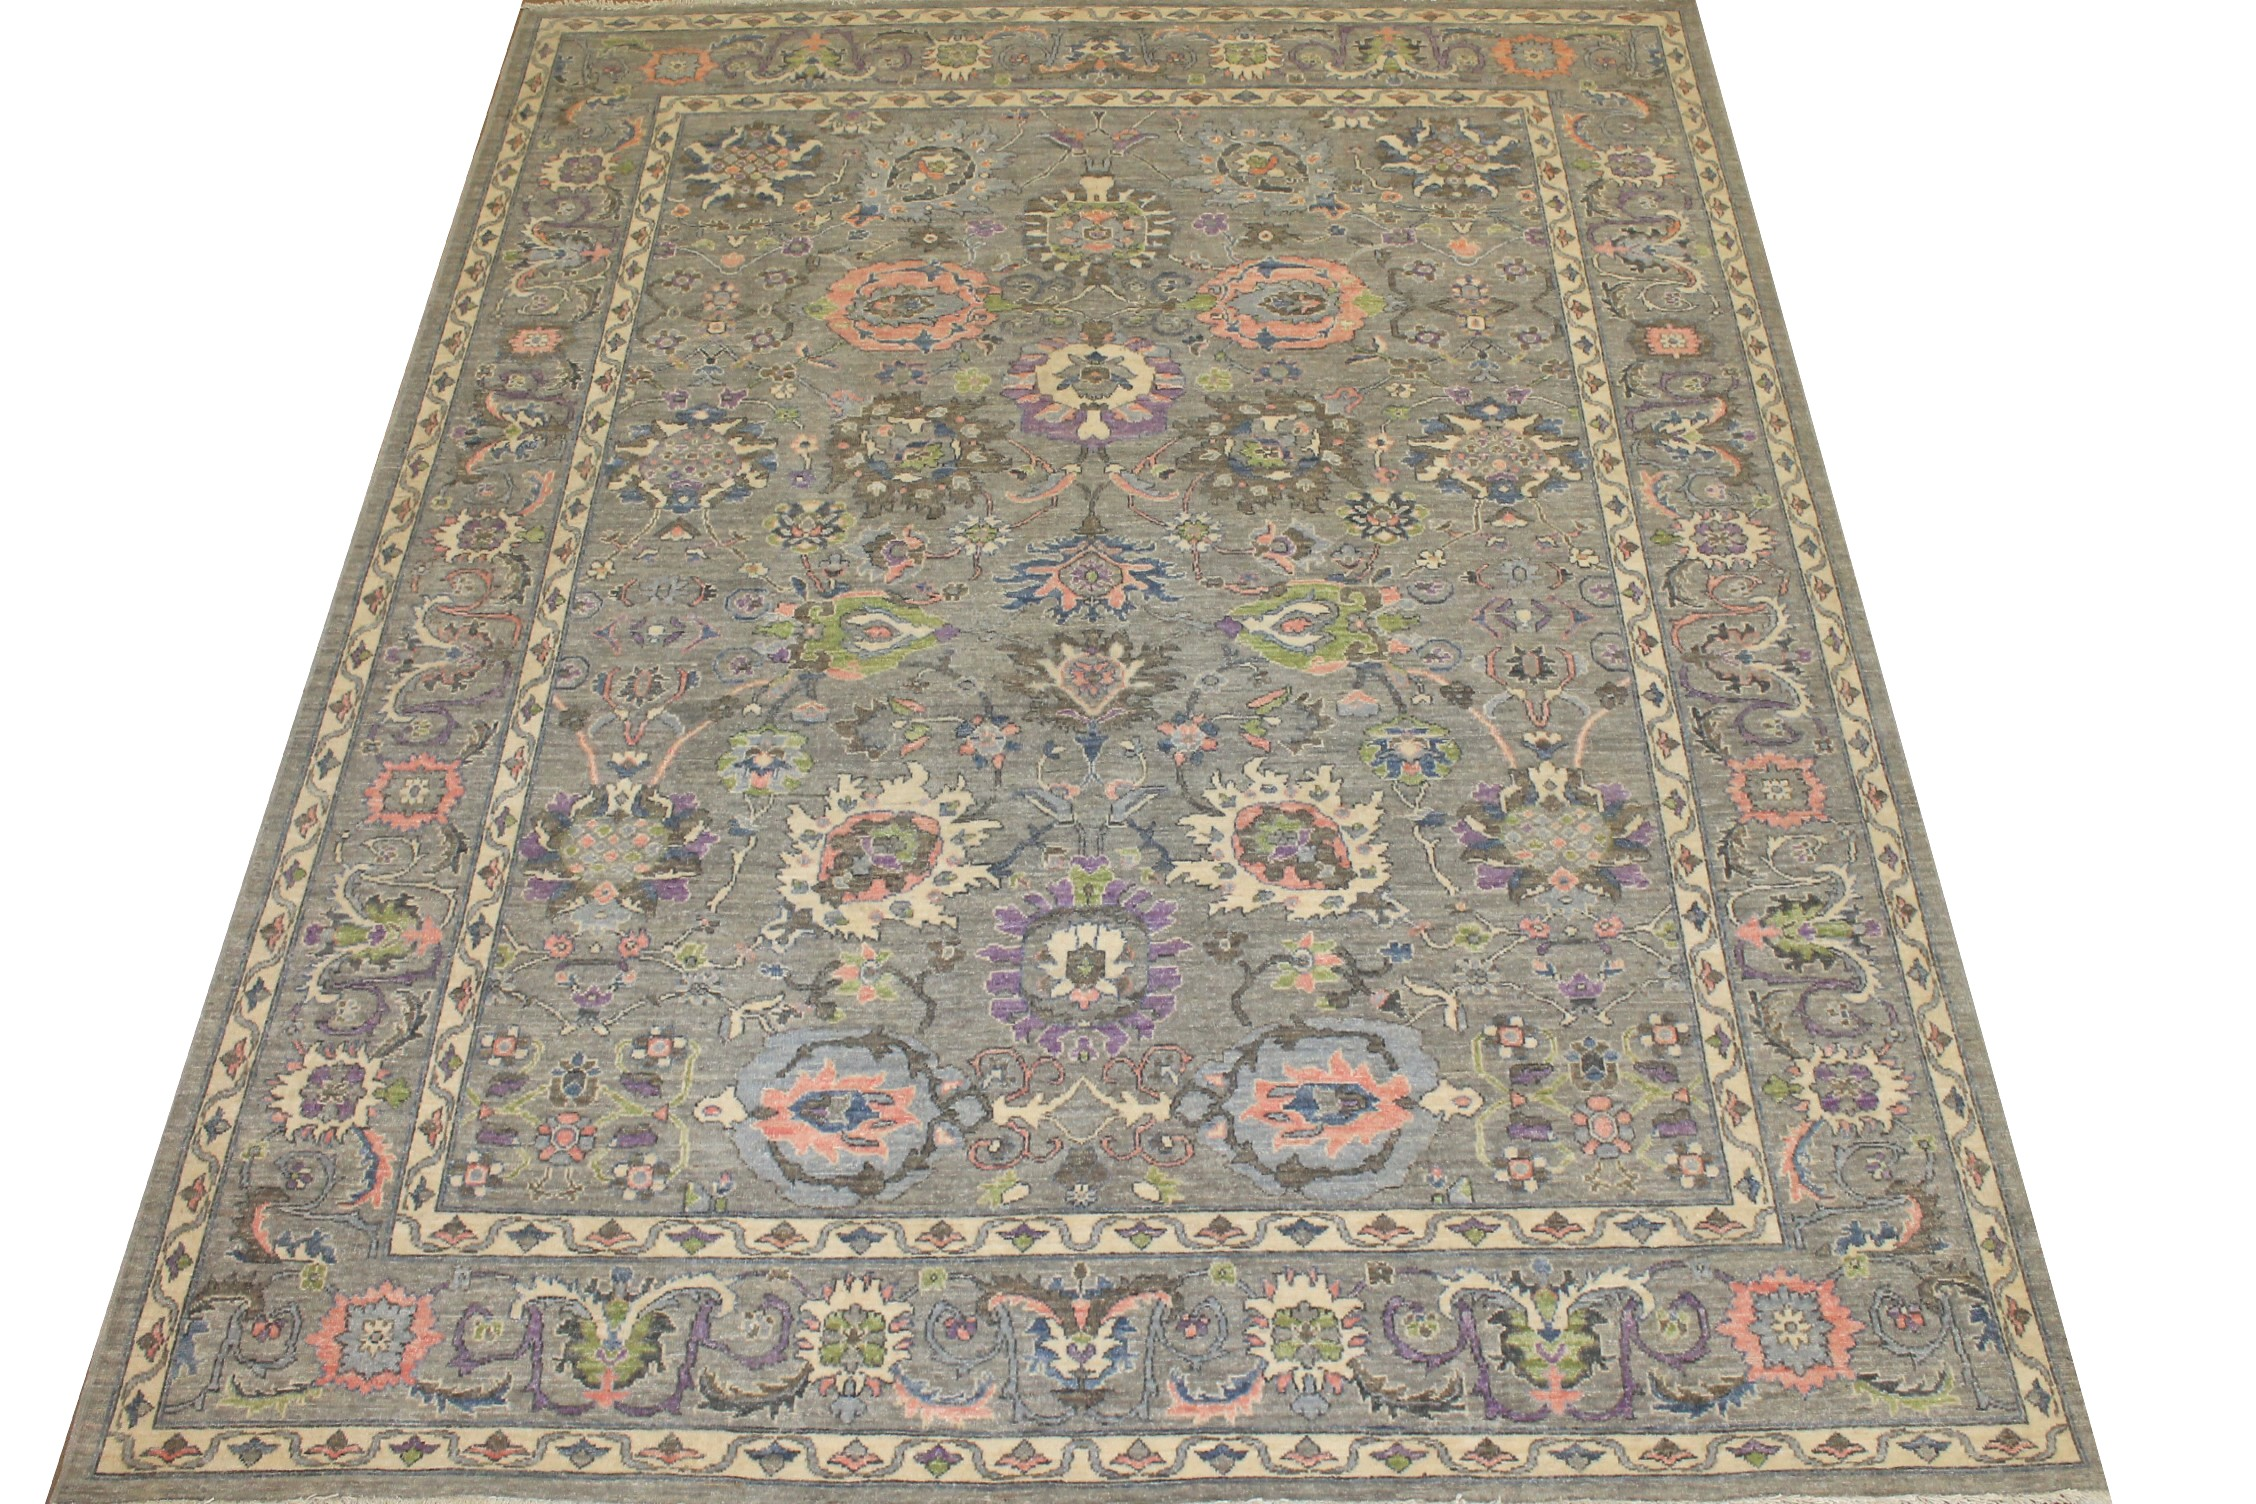 8x10 Peshawar Hand Knotted Wool Area Rug - MR024734